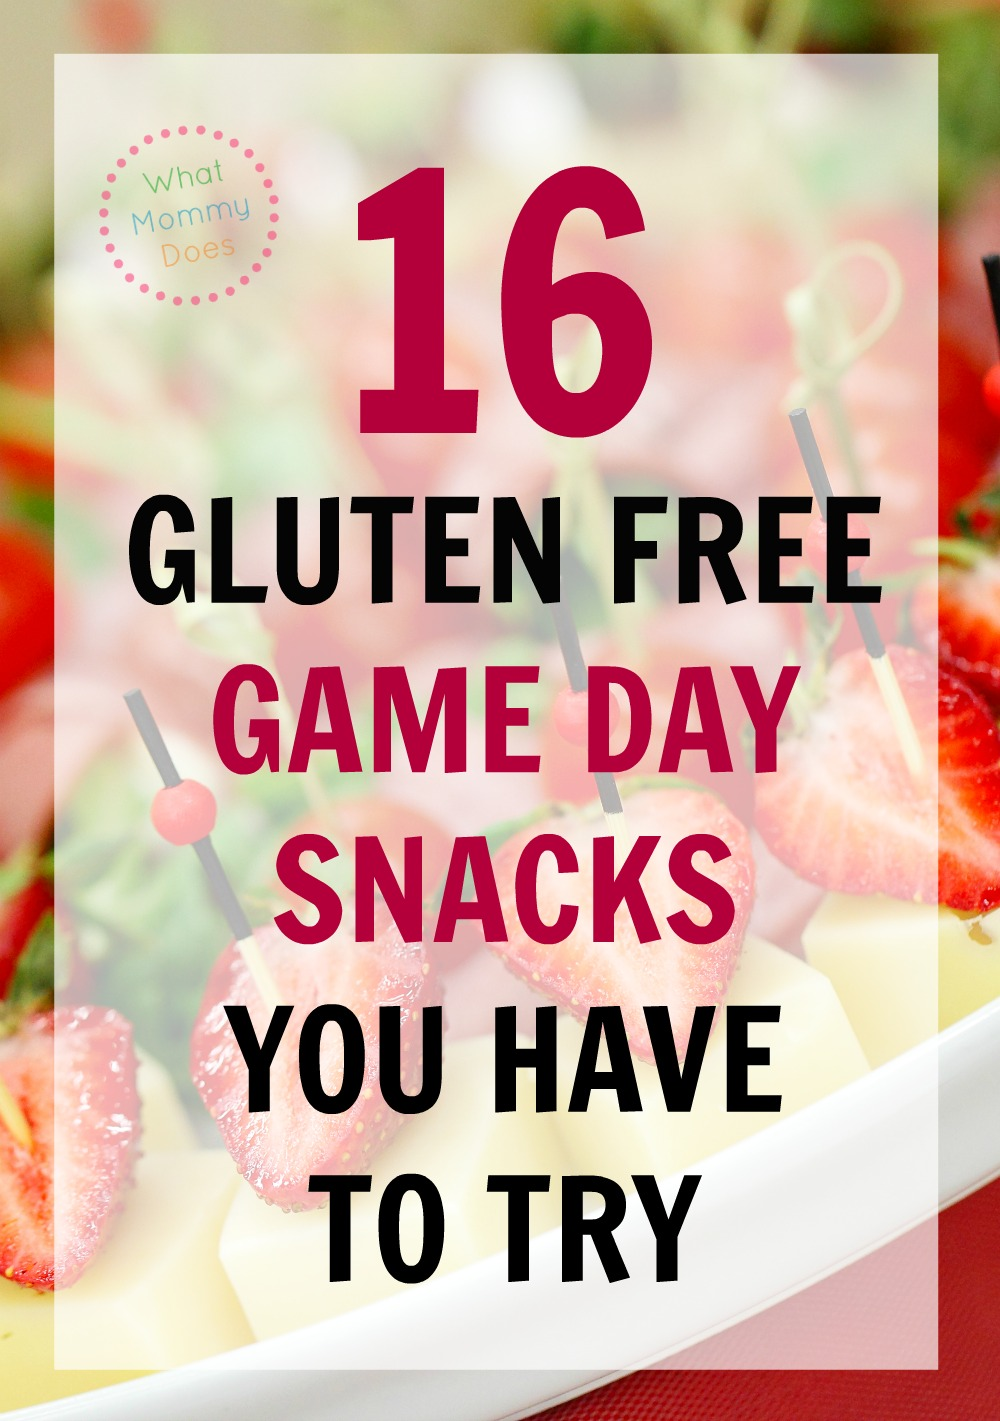 You have to try these healthy game day snacks at your next game day party. Being gluten free has never been so fun!!! | game day, the big game, March Madness, gluten free snack ideas, gluten free appetizers